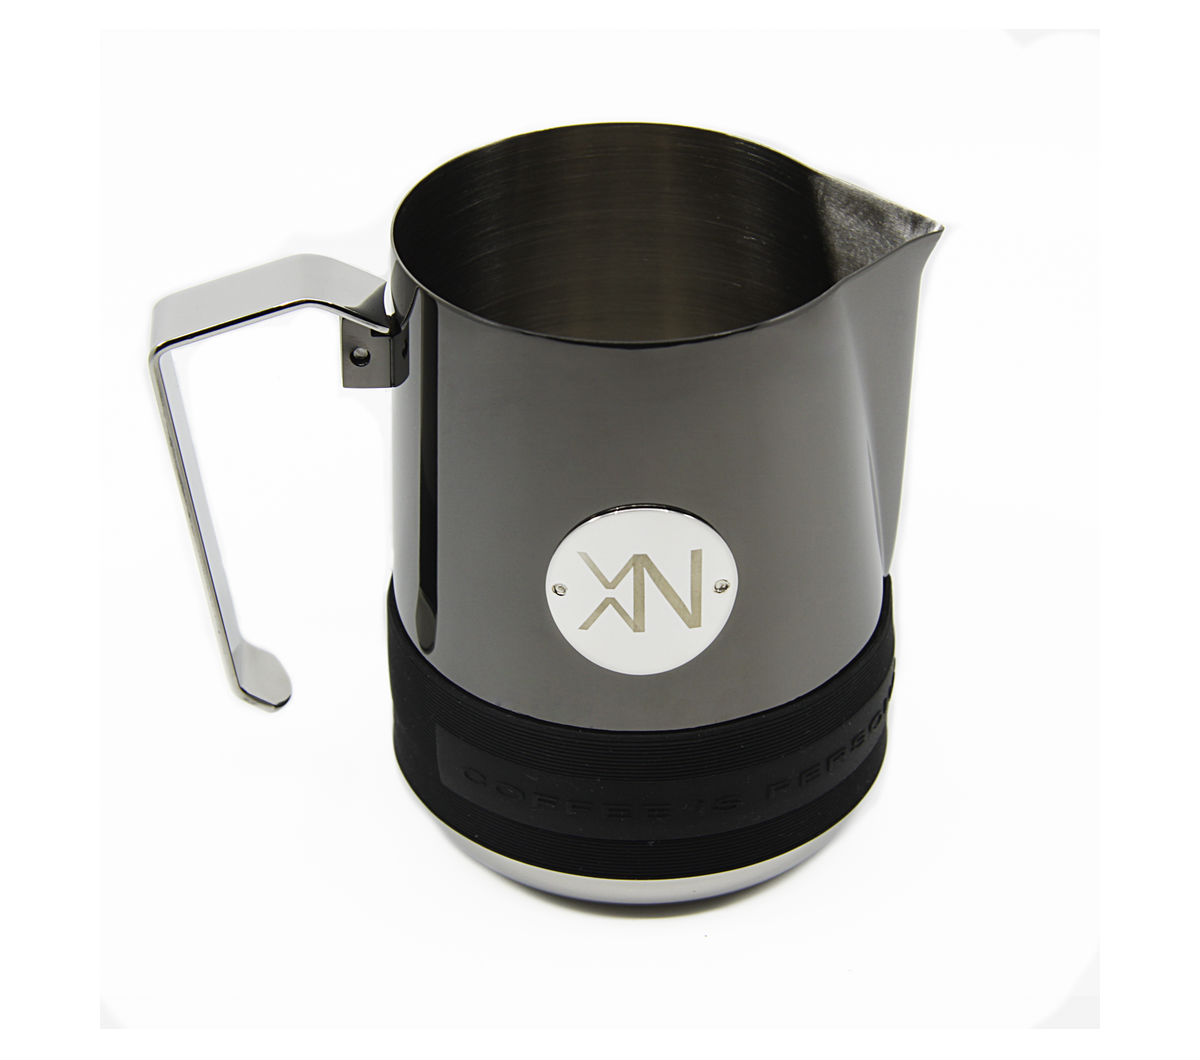 Modular Milk Pitcher - black